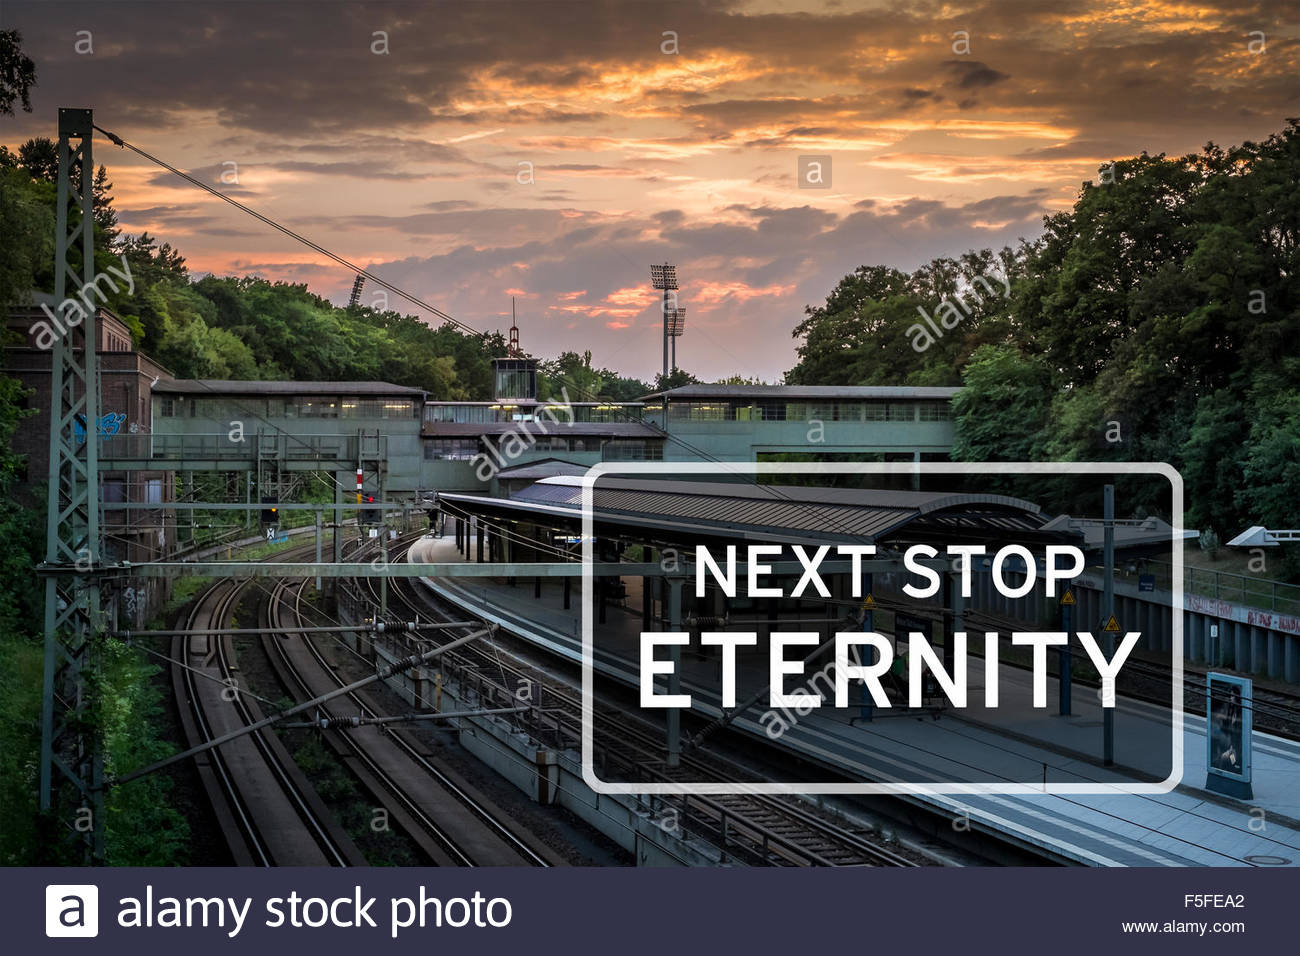 Next stop - Eternity - Stock Image